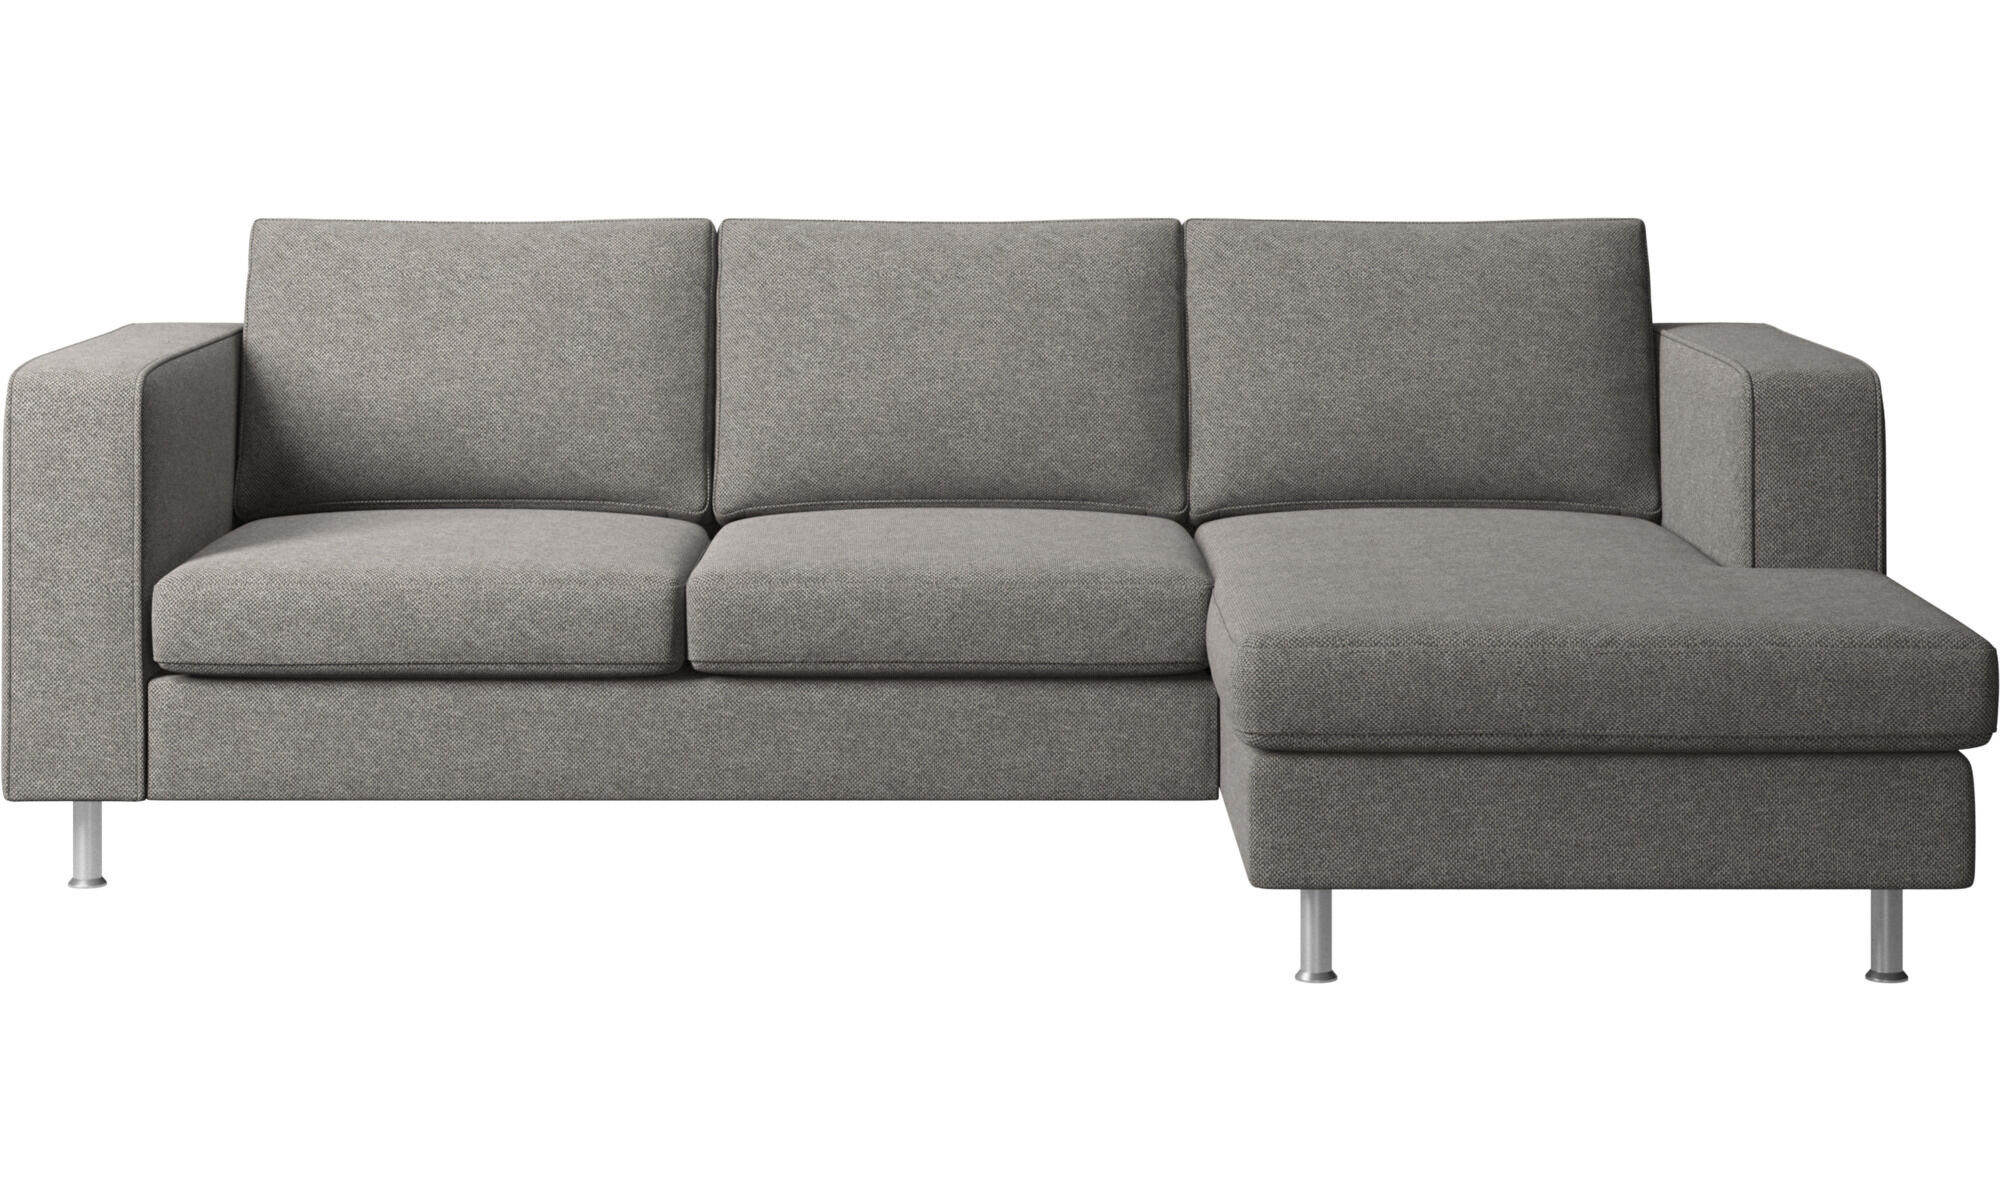 modern chaise longue sofas quality from boconcept rh boconcept com Modern Chaise Lounge Bedroom Chaise Lounge